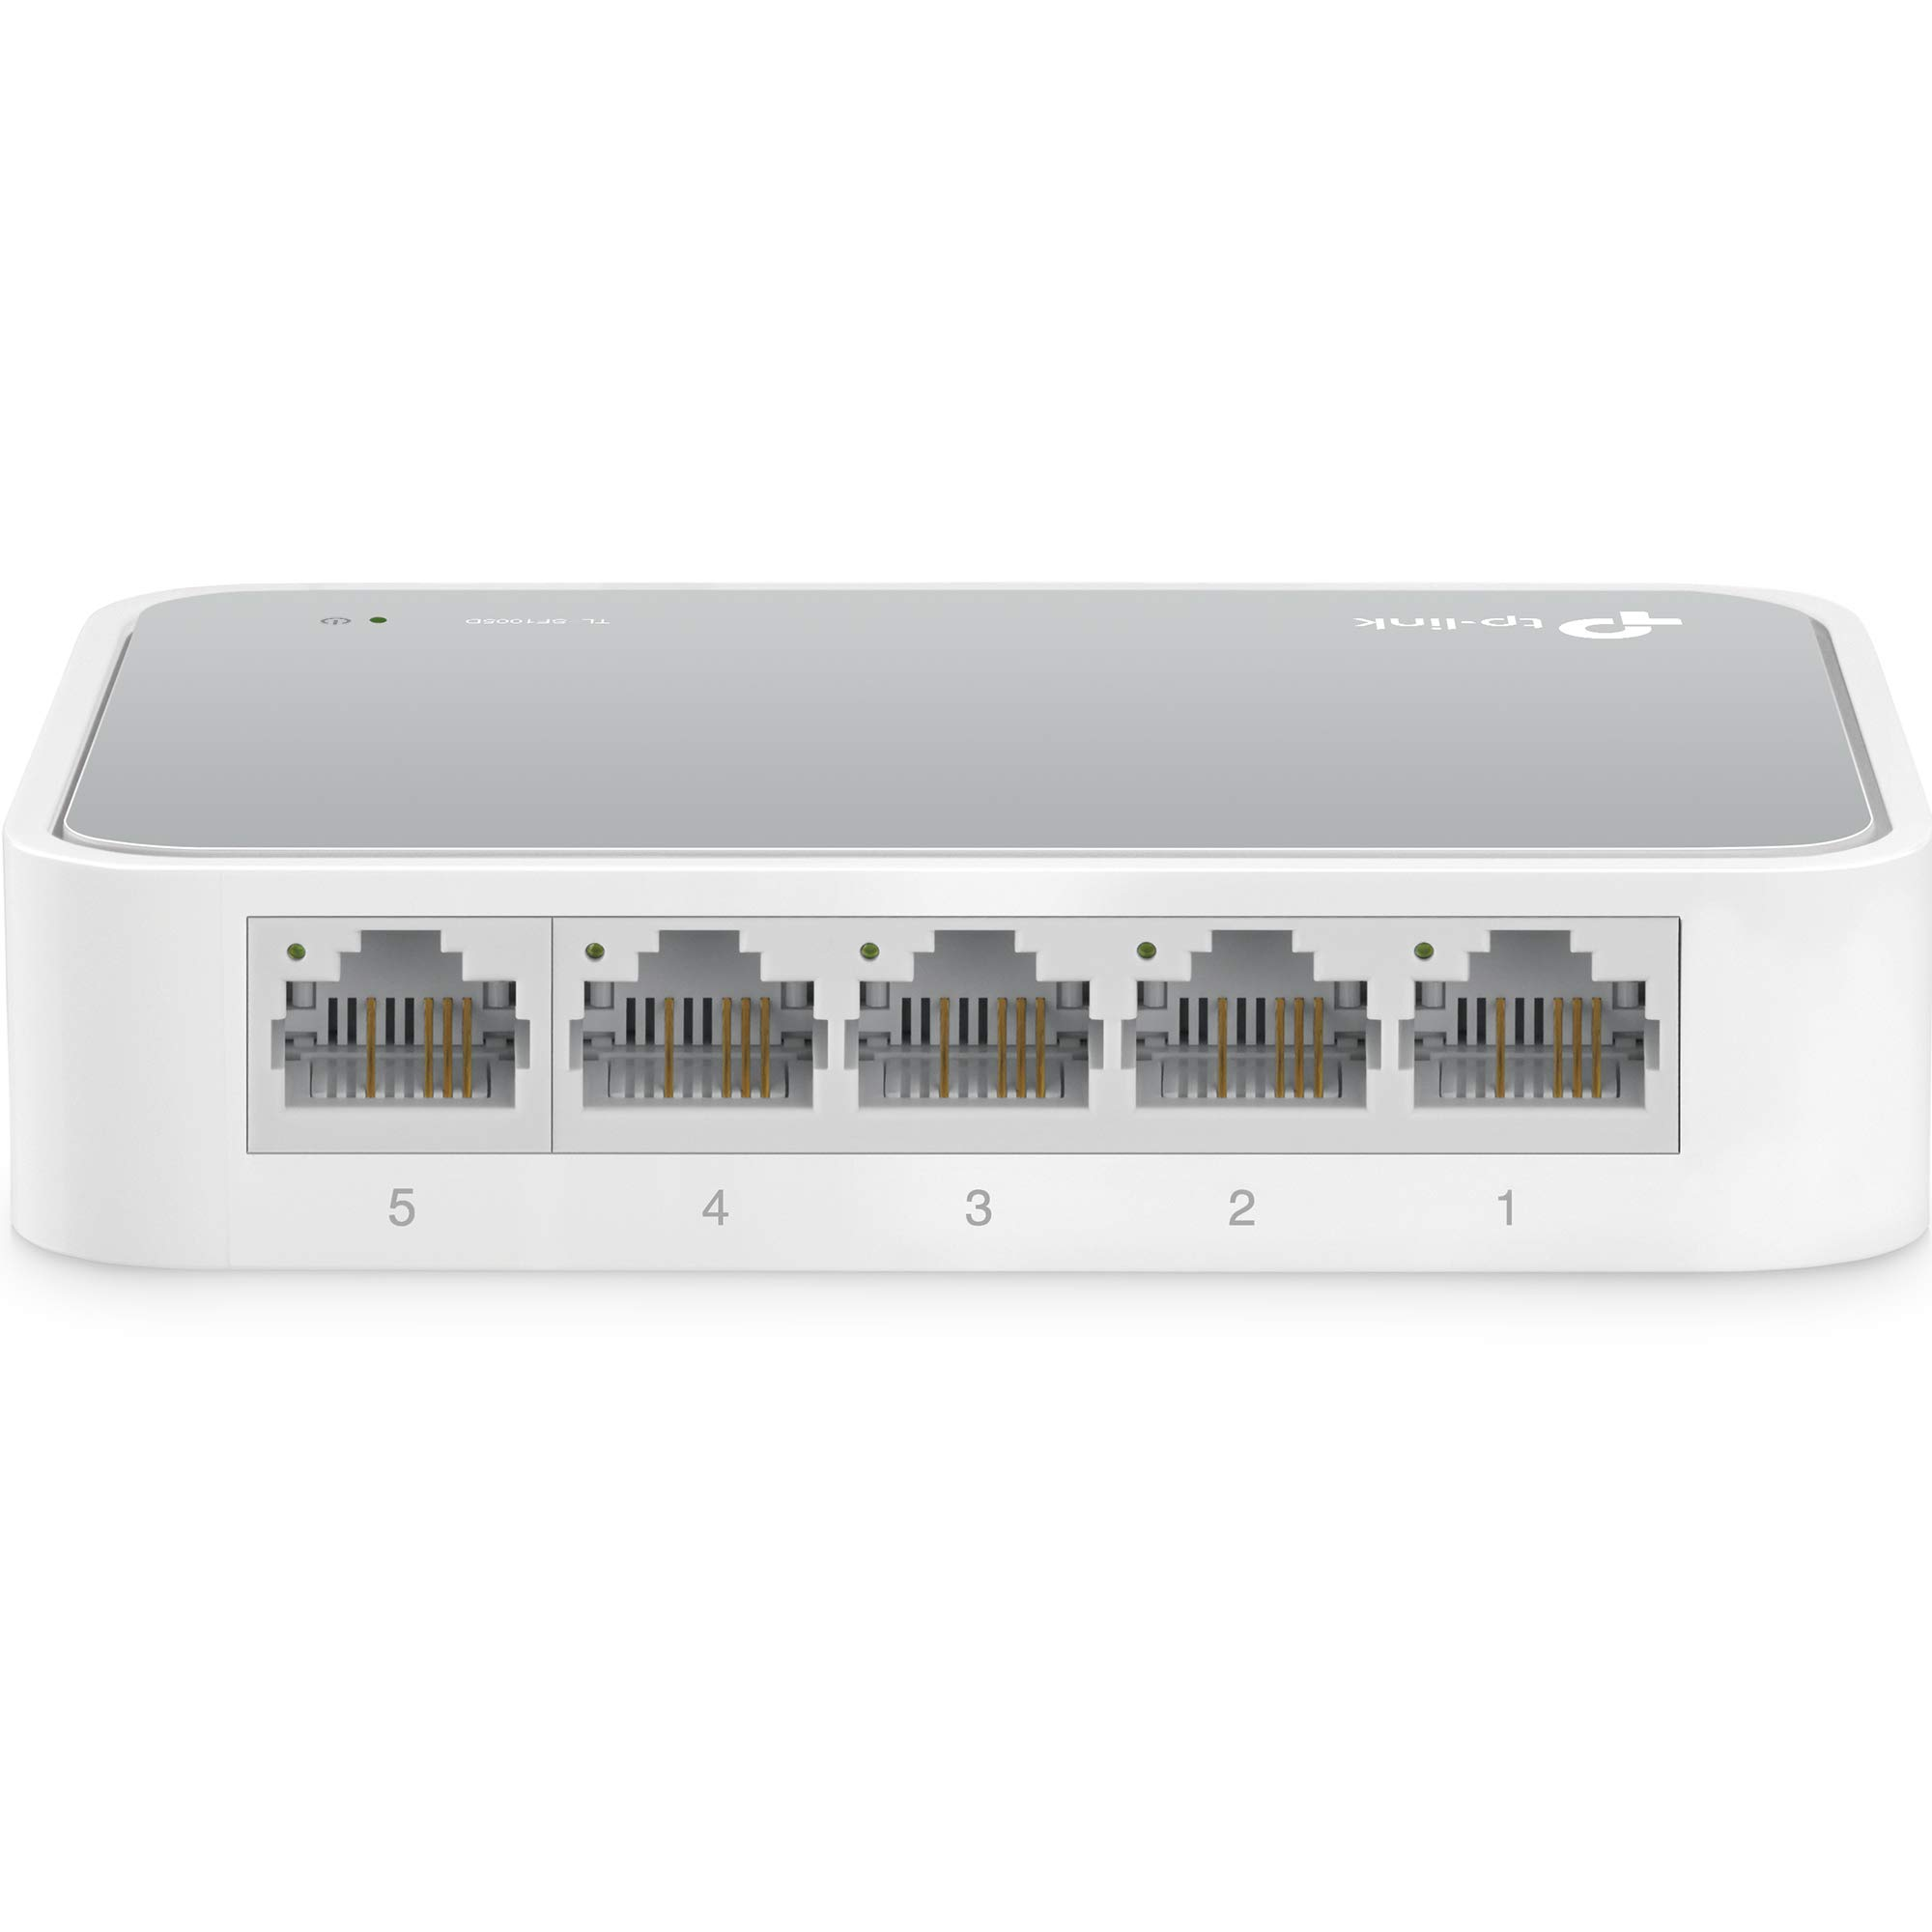 TP-Link TL-SF1005D Switch Desktop, 5 Porte RJ45 10/100 Mbps, Plug & Play product image